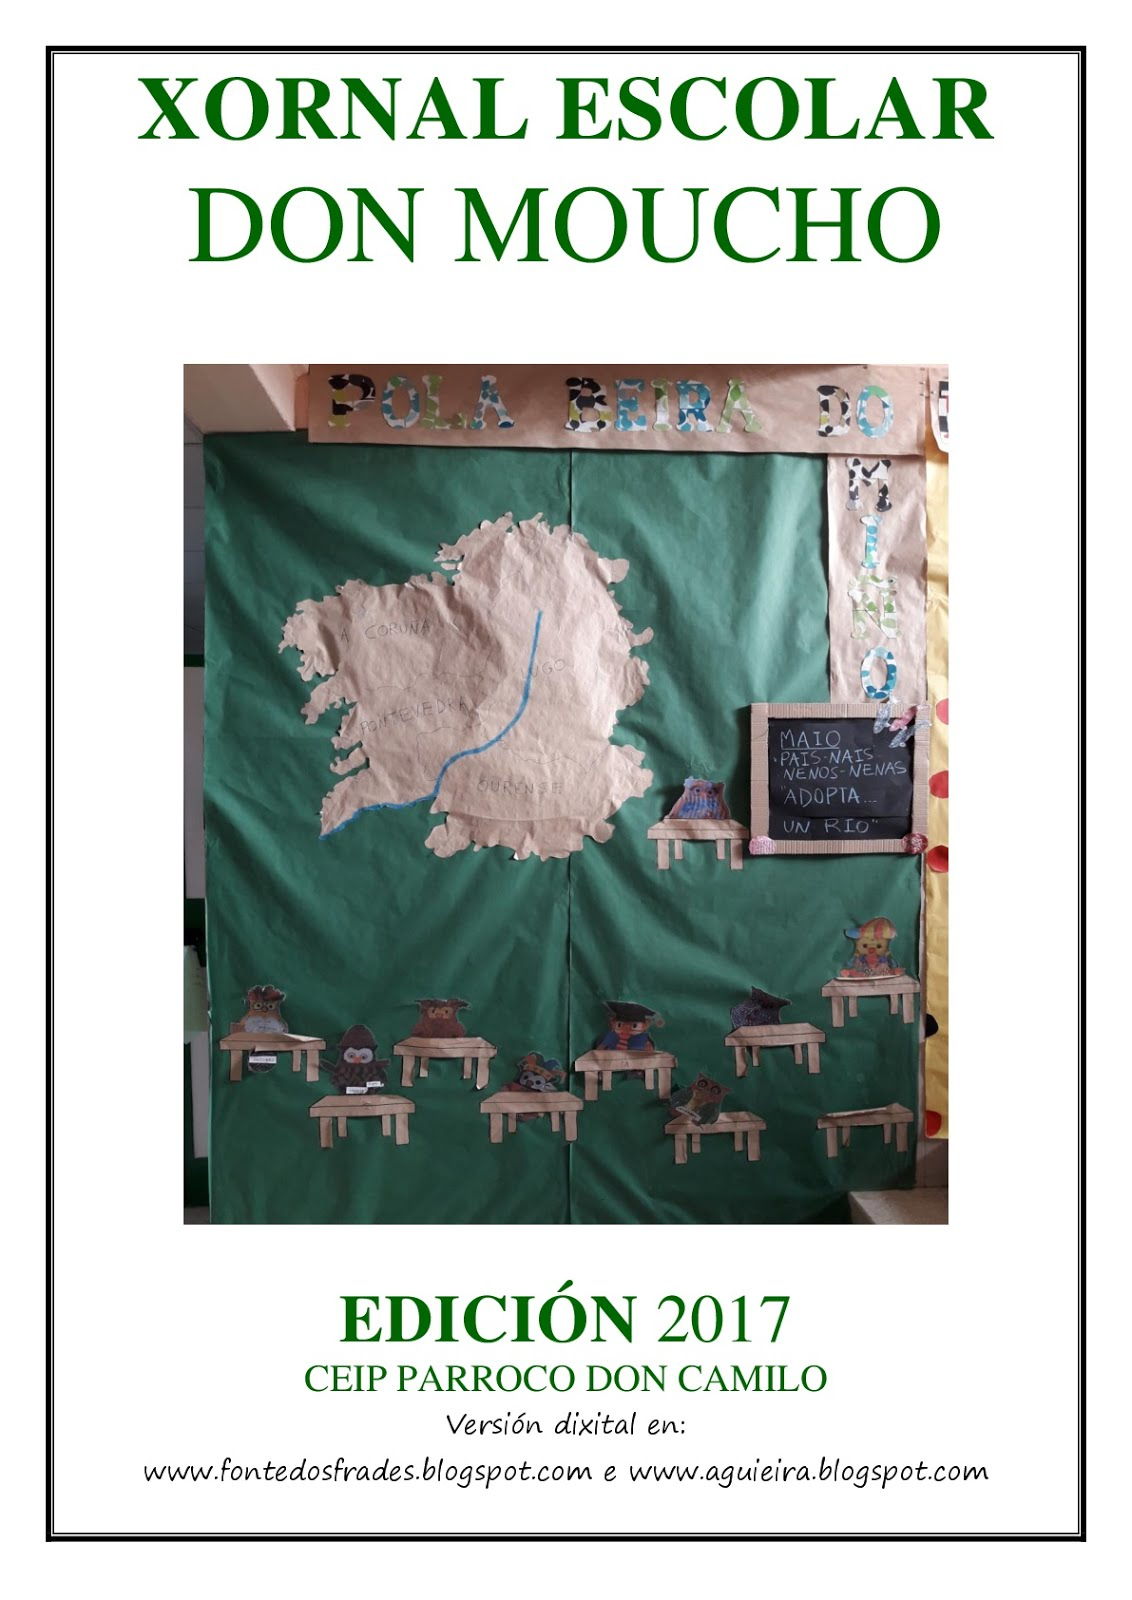 DON MOUCHO